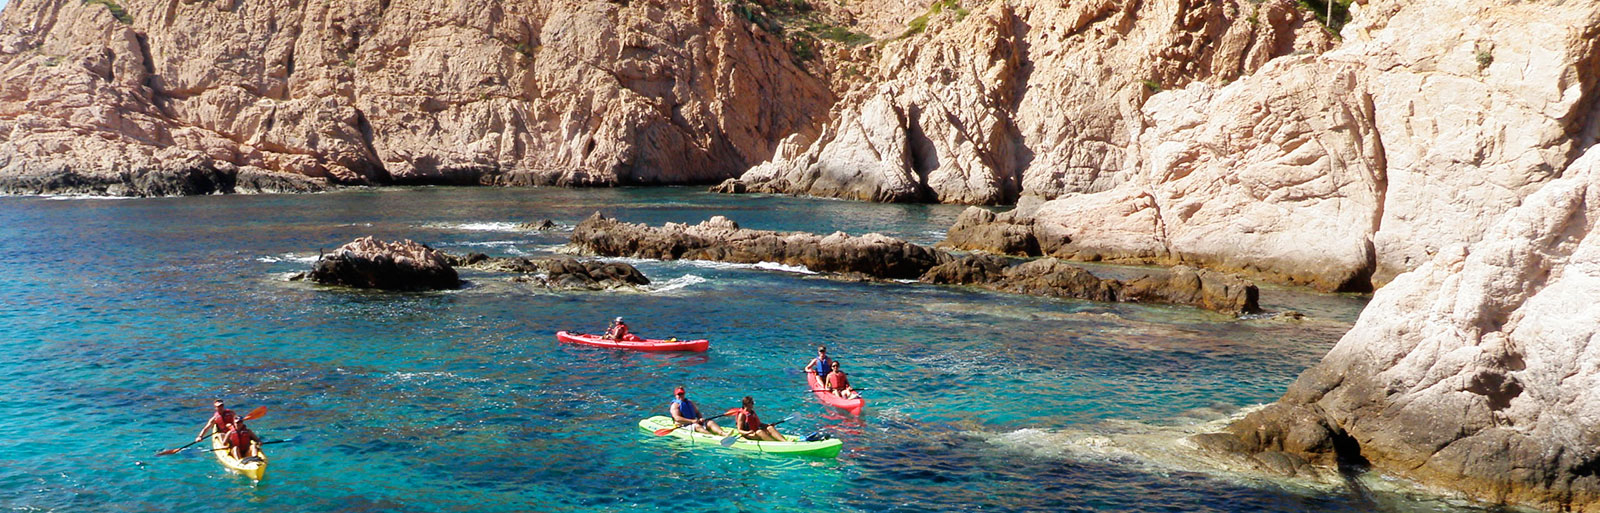 Sea Kayaking & Snorkeling on a Mexico Yoga Retreat: Turquoise Waters